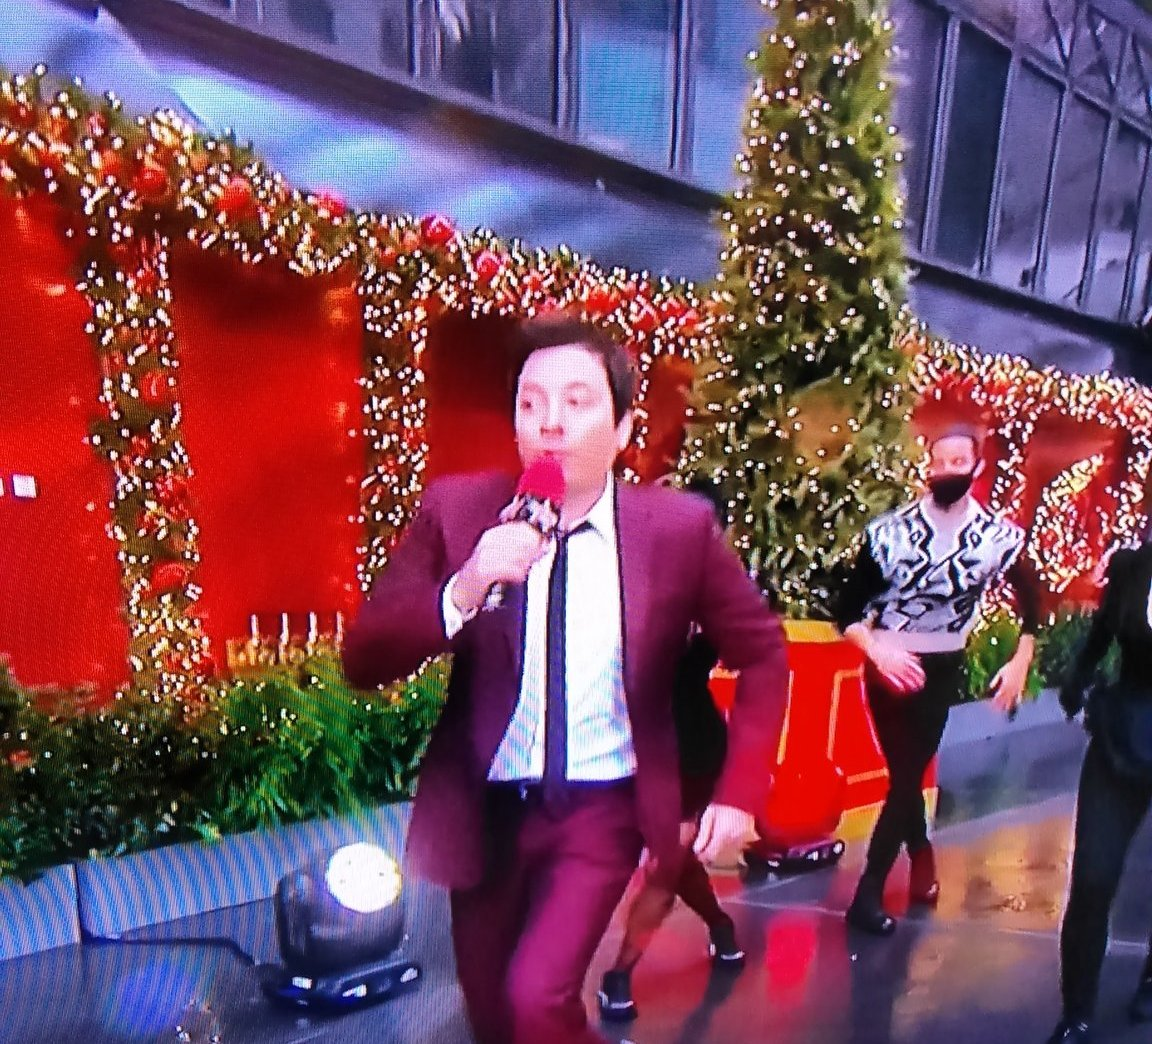 @FallonTonight Here's you are Jimmy running faster than any turkey 🦃😂   #JimmyFallon  #tonightshow  #FallonTonight  #MacysParade  #MacysThanksgivingParade  #VerizonLive  #5G #AugmentedReality  #IT #technology